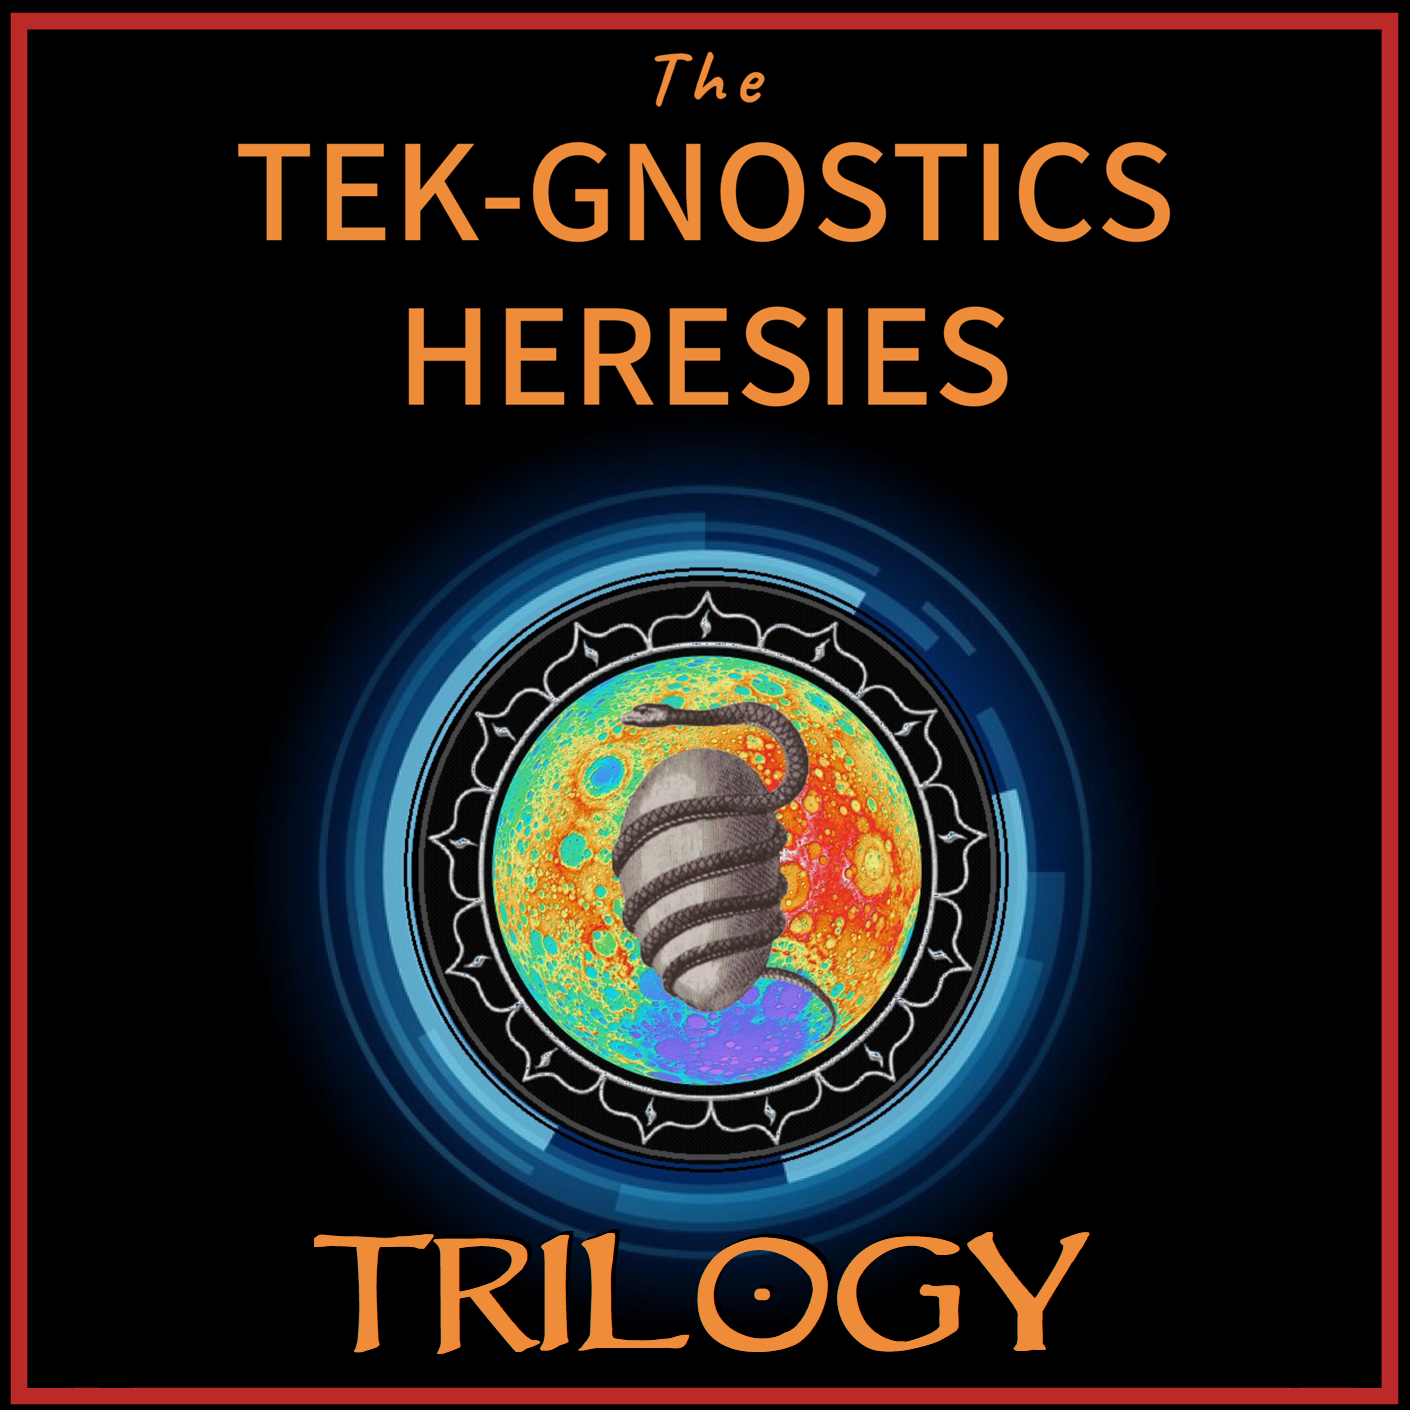 Order the Trilogy Today!